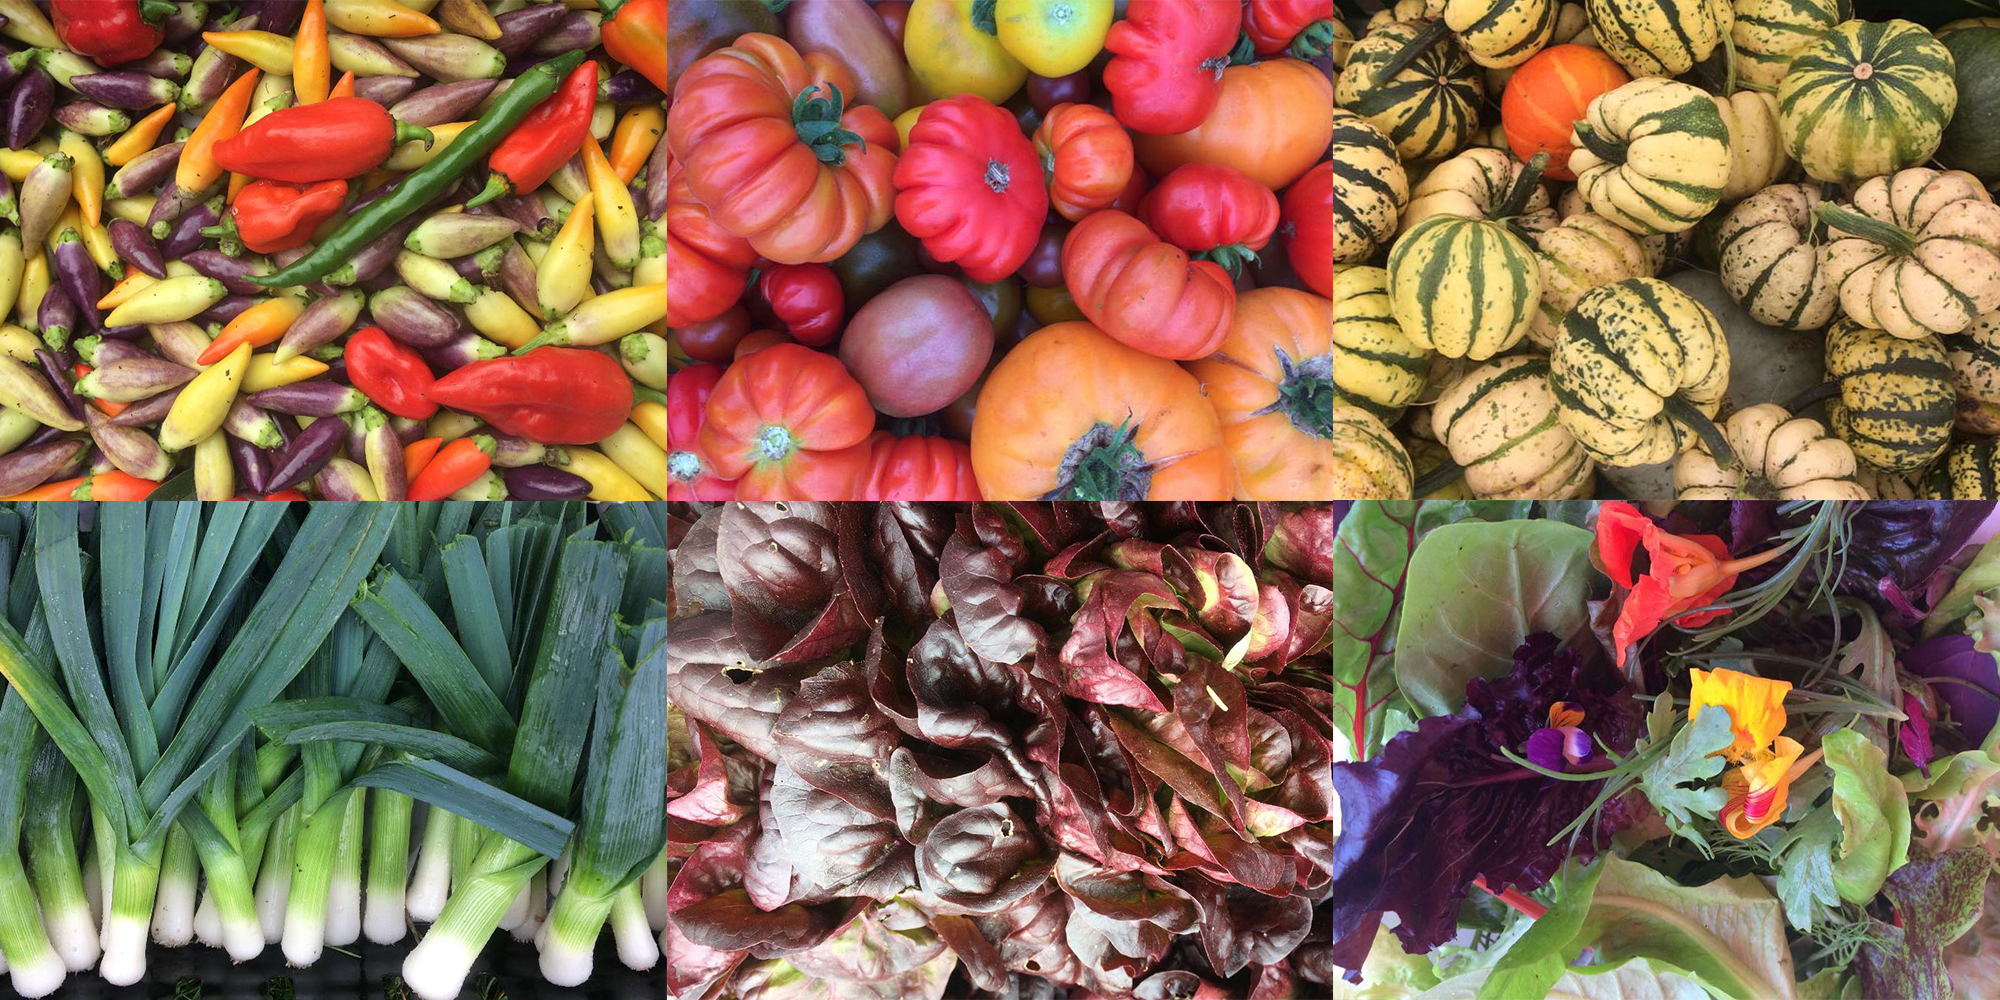 Eves-hill-veg-co-buy-our-veg.jpg